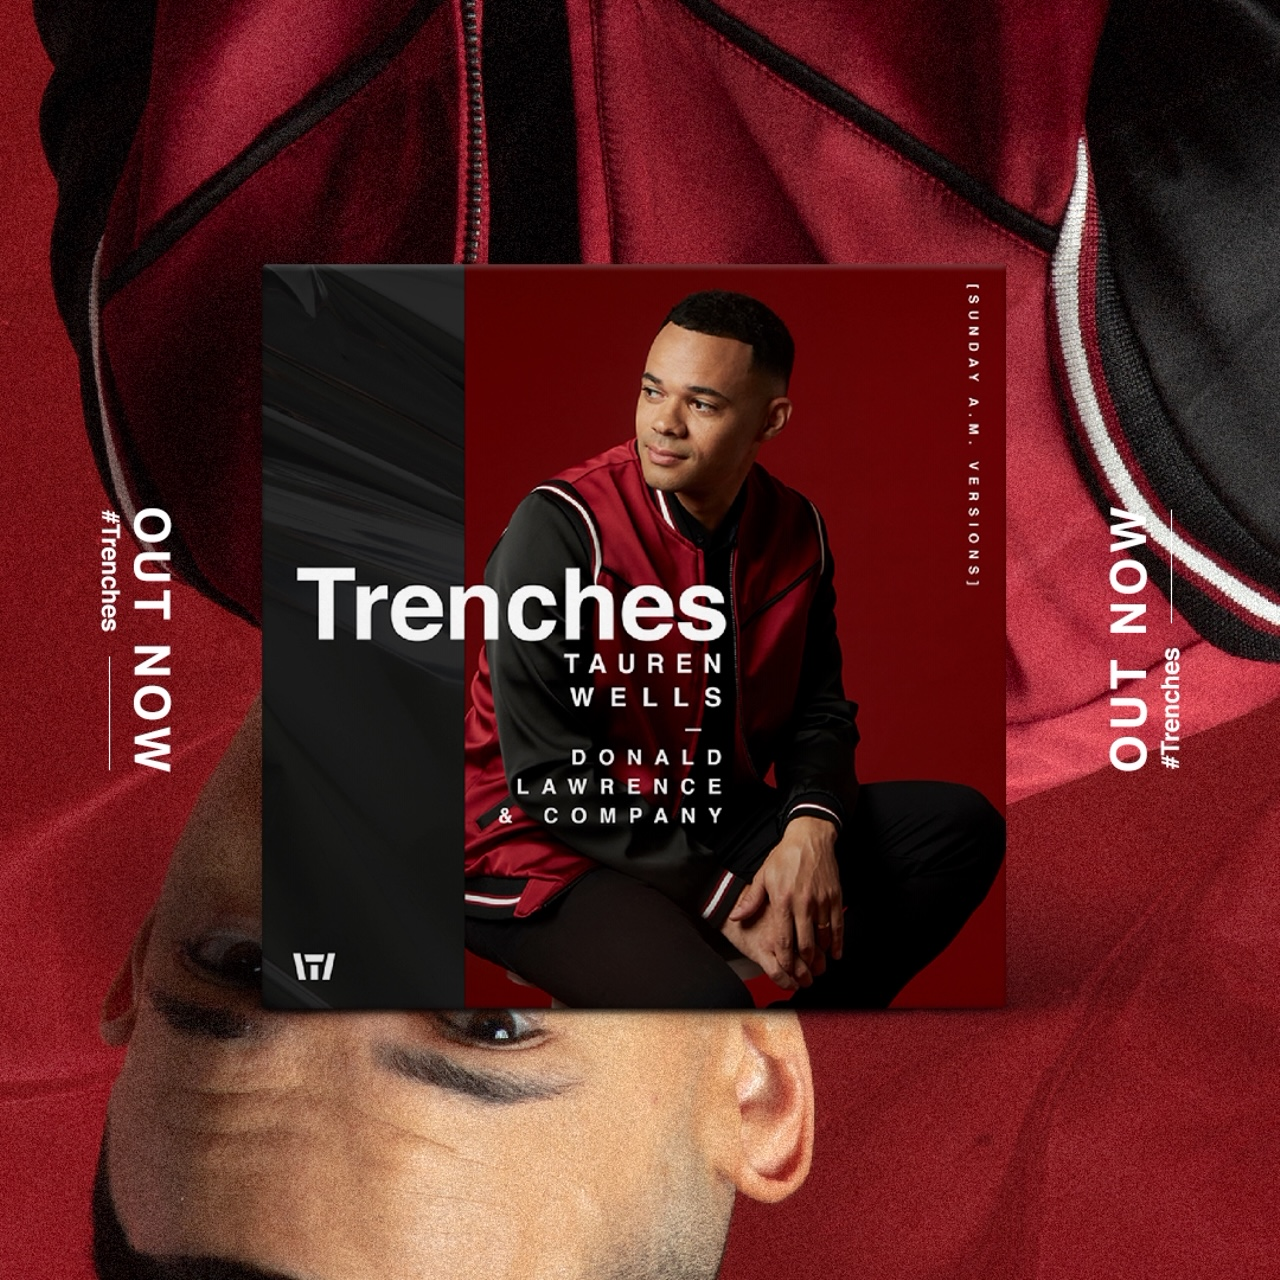 TW Trenches 1 copy